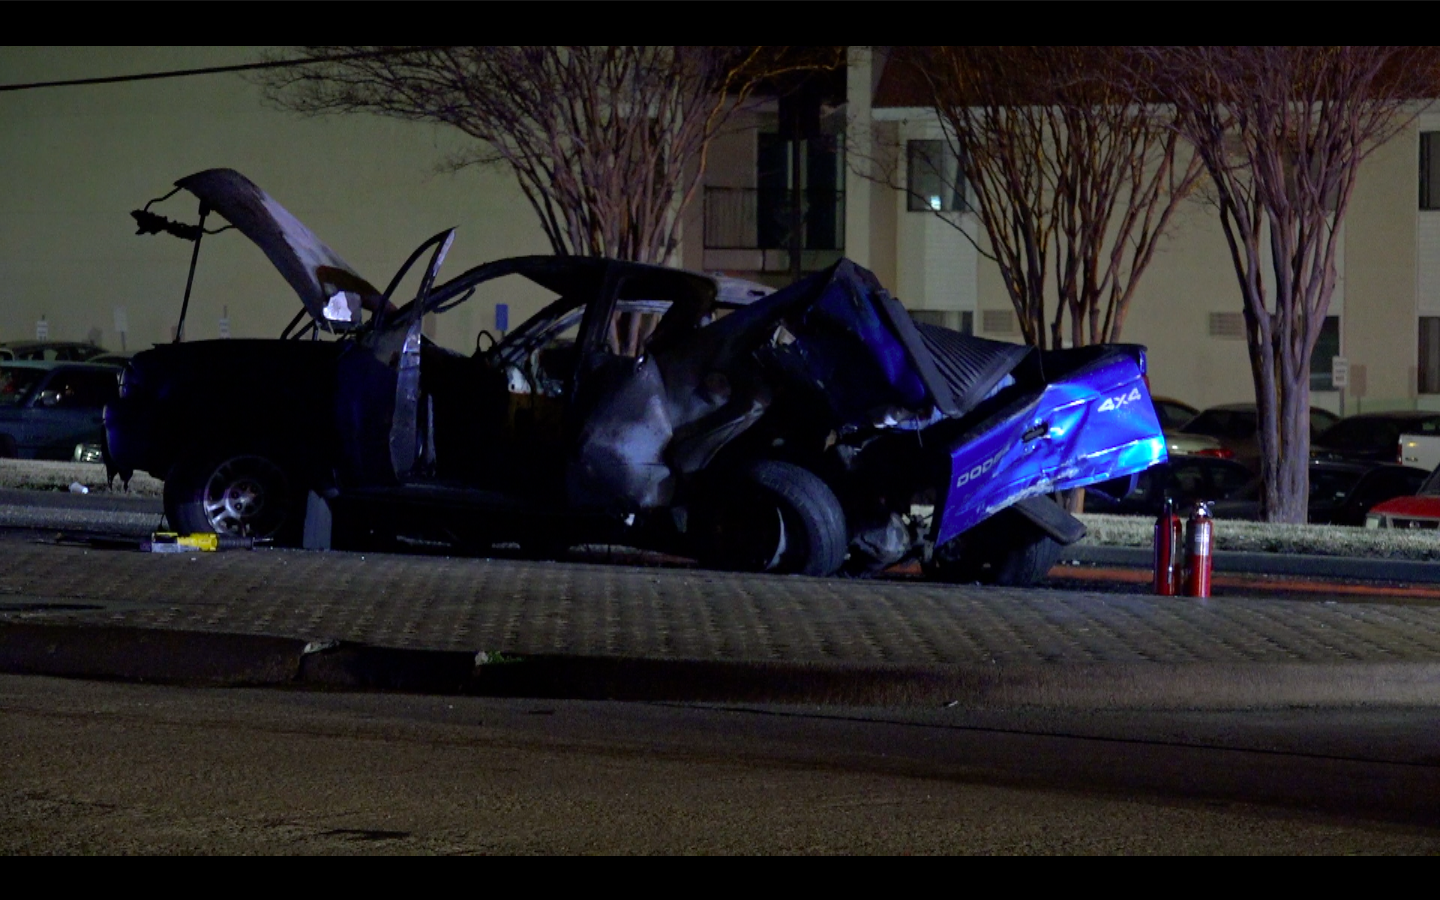 dwi suspect charged in police chase that ended in fiery haltom city